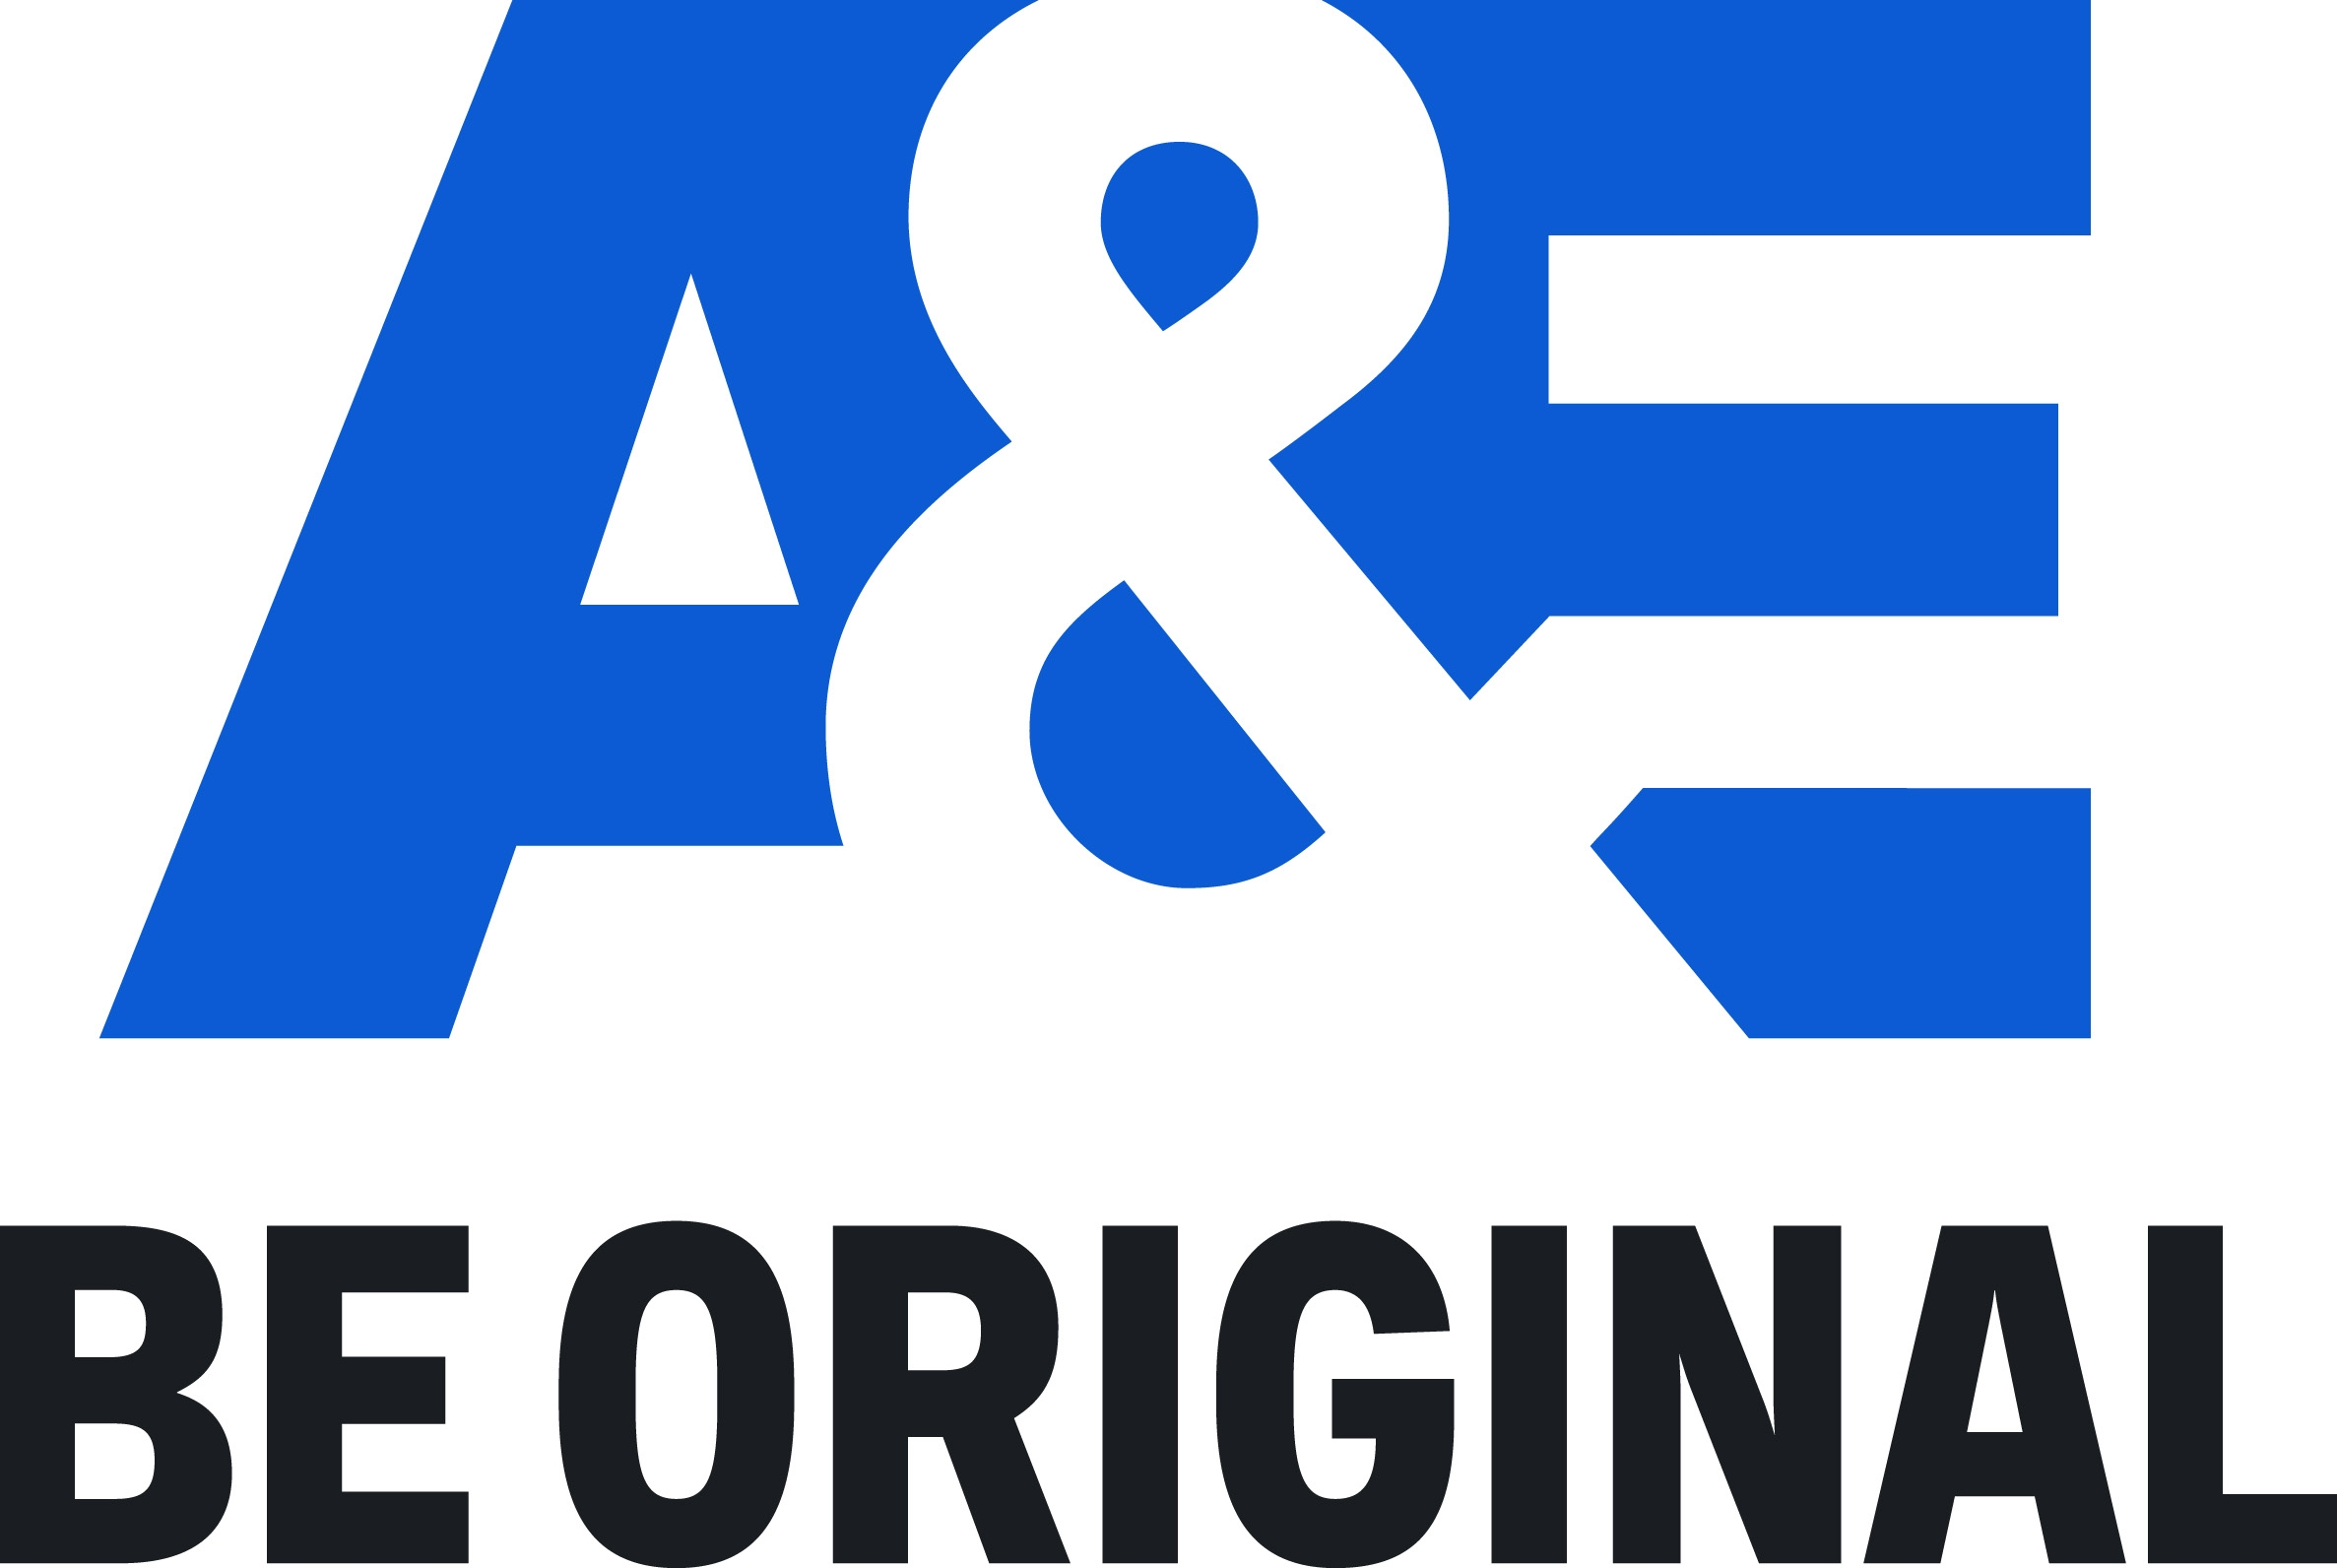 A&E_Logo_Tagline_Lockup_Stacked_BigSkyBlue_CoolCharcoal